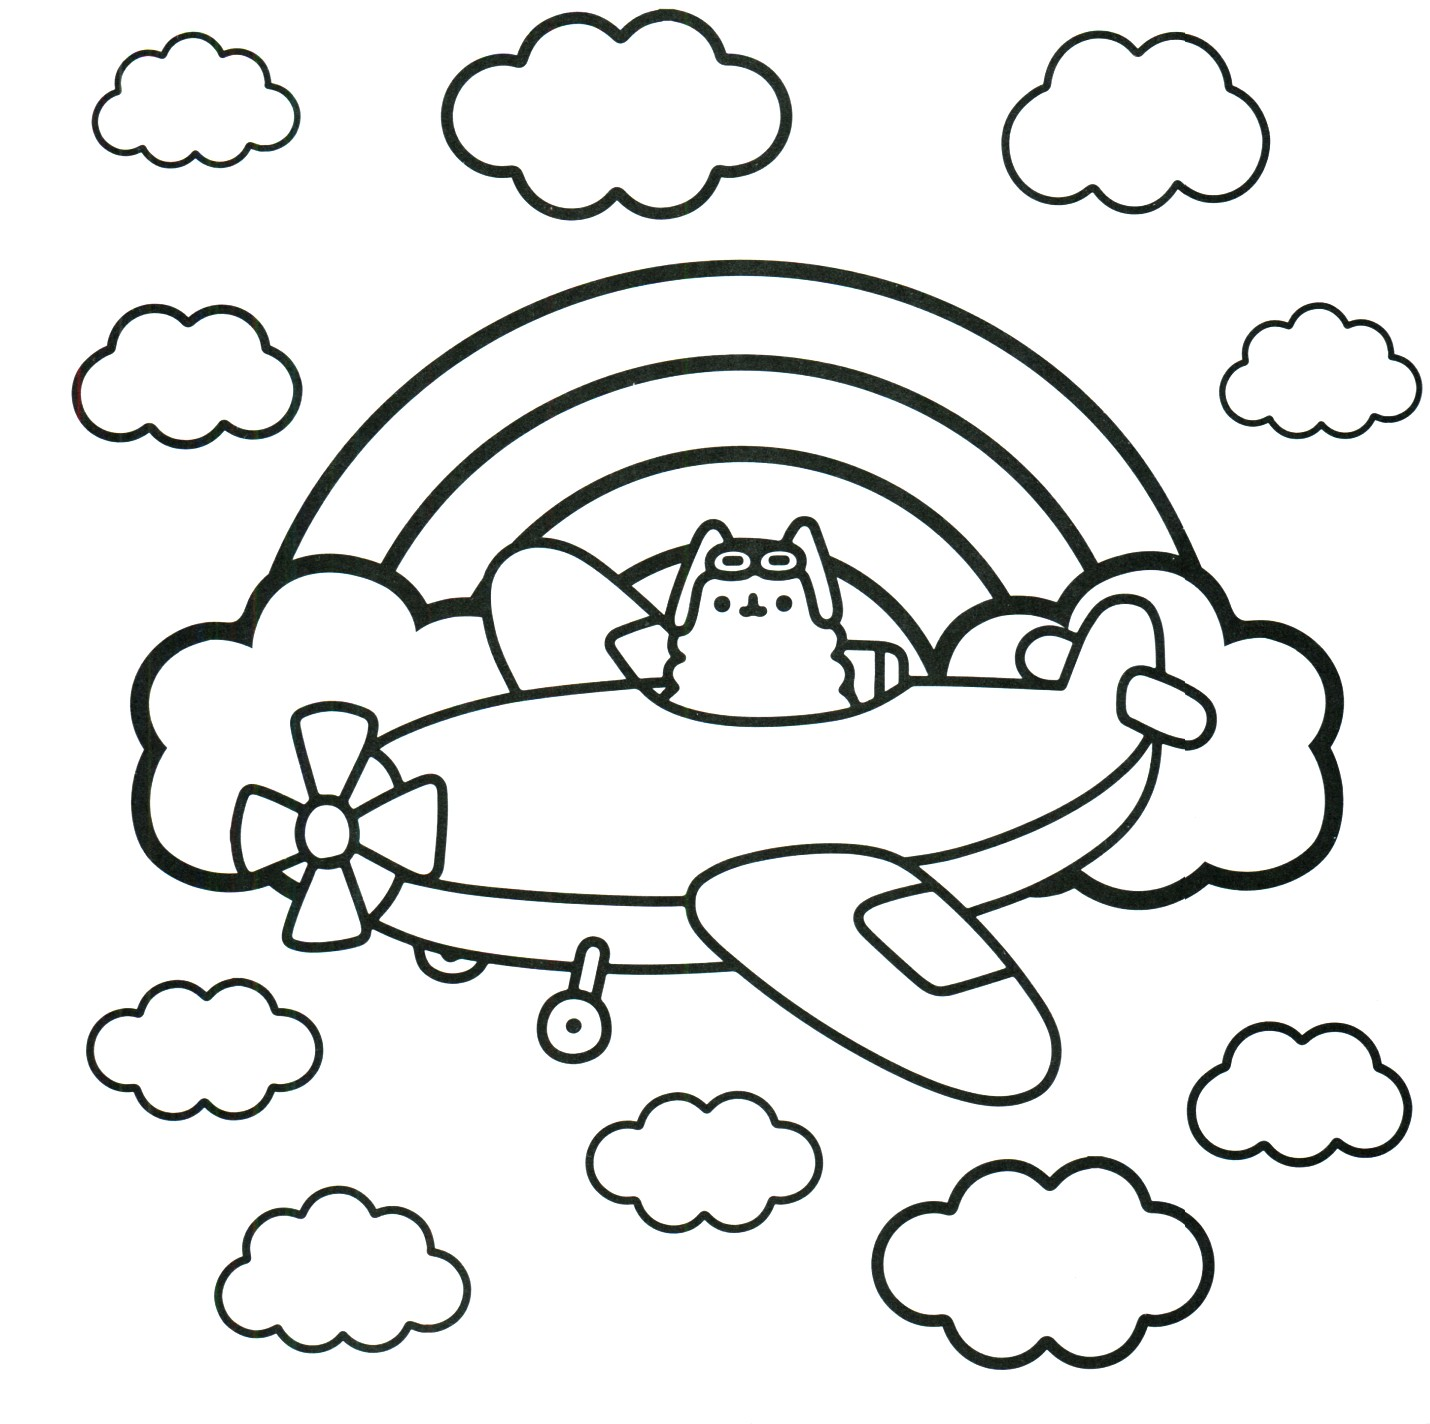 Pusheen Cat Coloring Pages At Getdrawings Com Free For